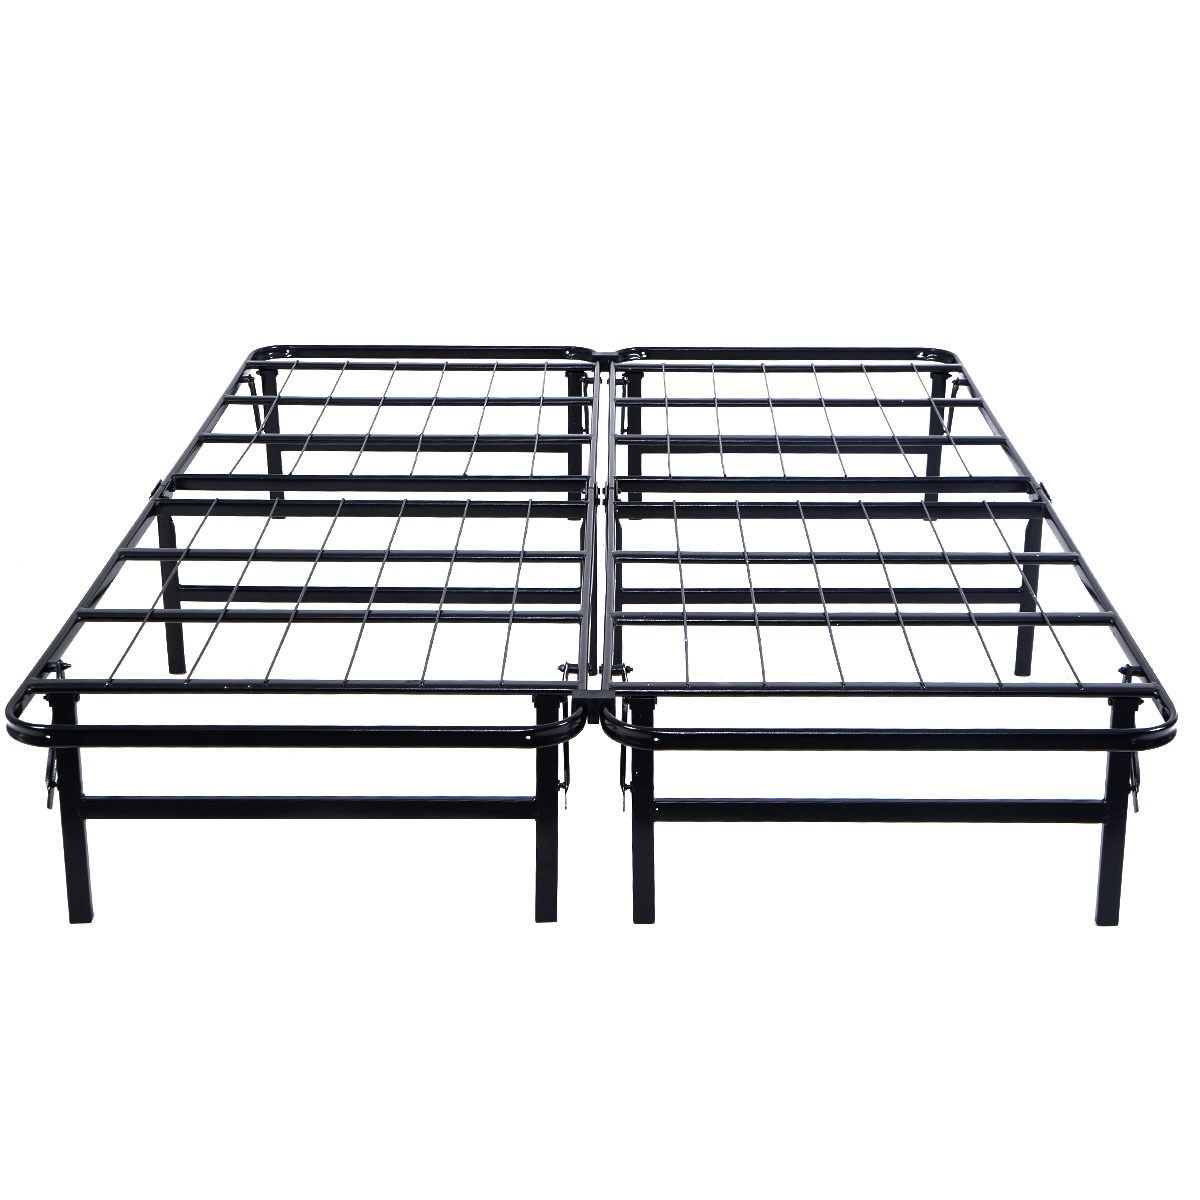 Metal bed frame platform mattress foundation queen size ebay for Queen size bed frame